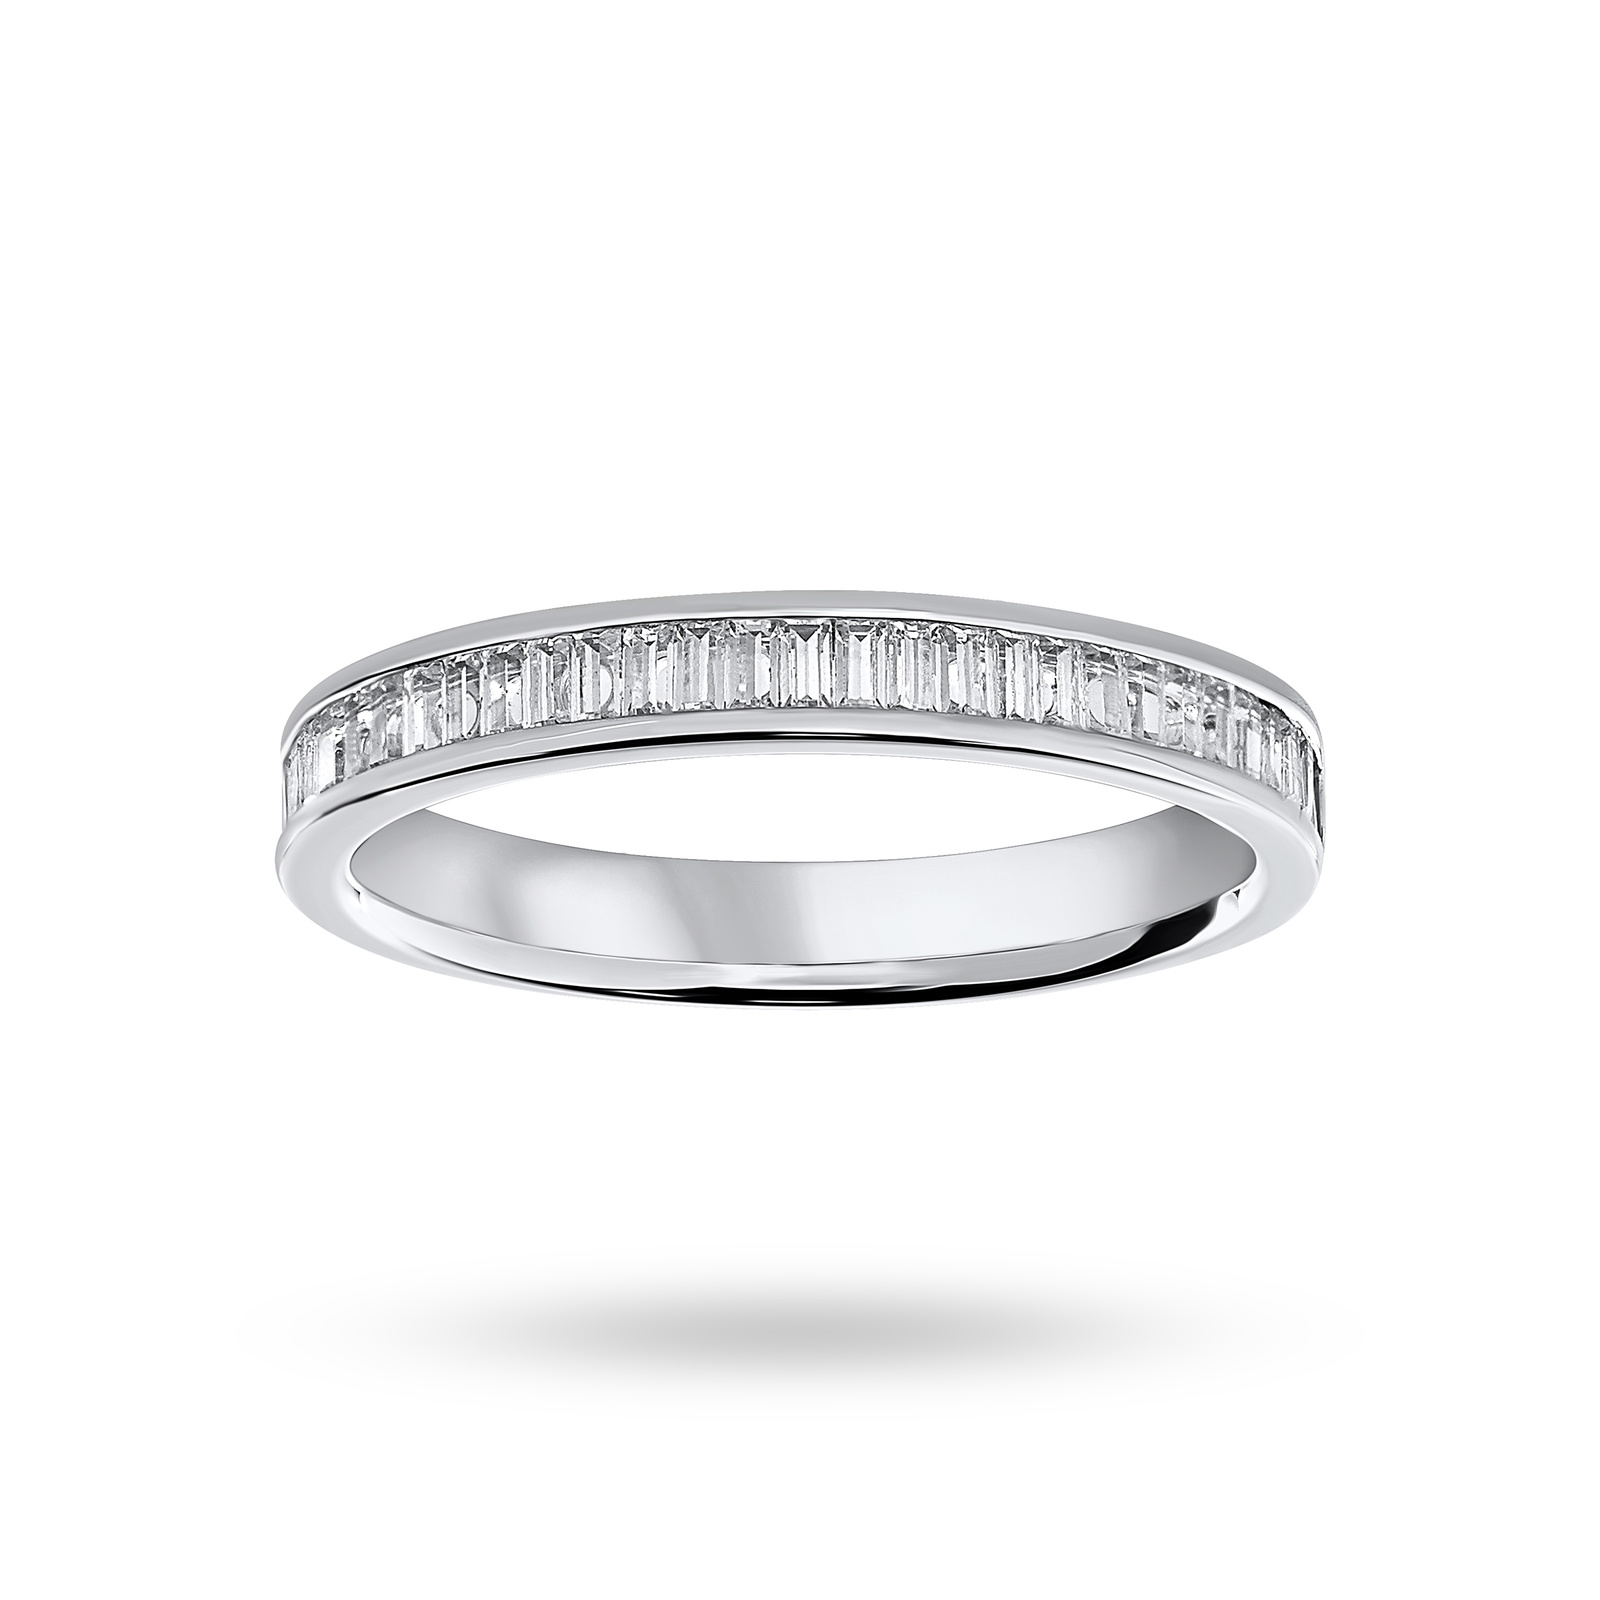 Platinum 0.33 Carat Baguette Half Eternity Ring